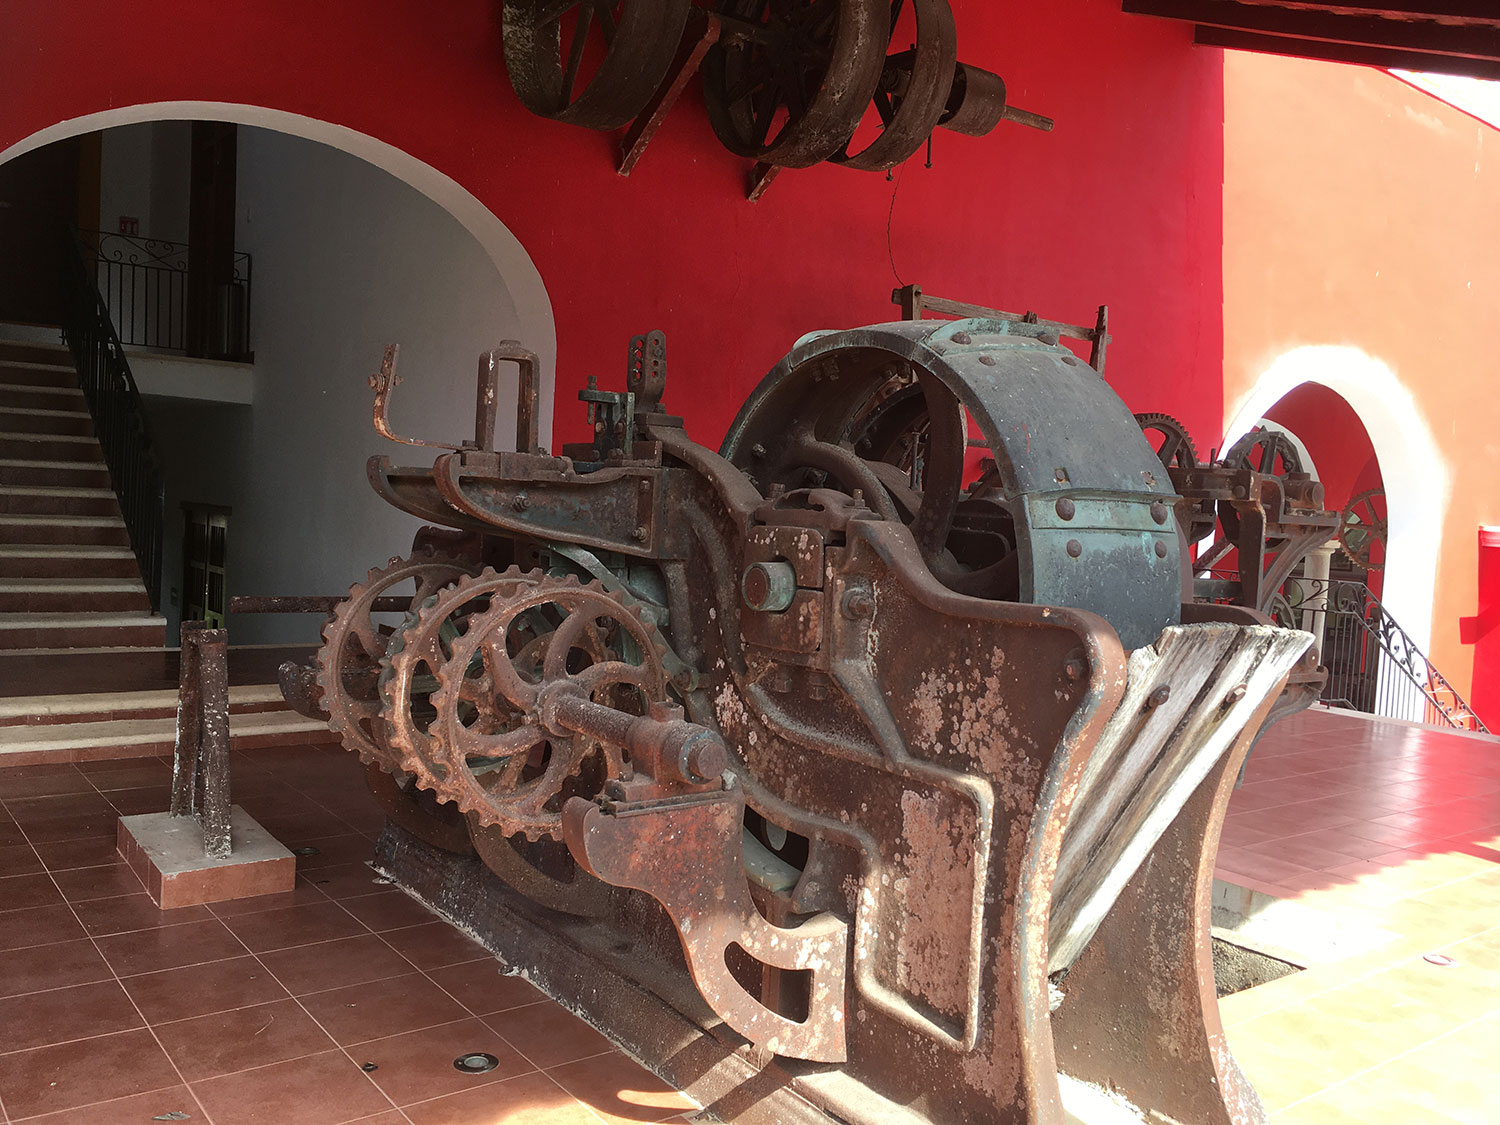 The old machinery is on display today.